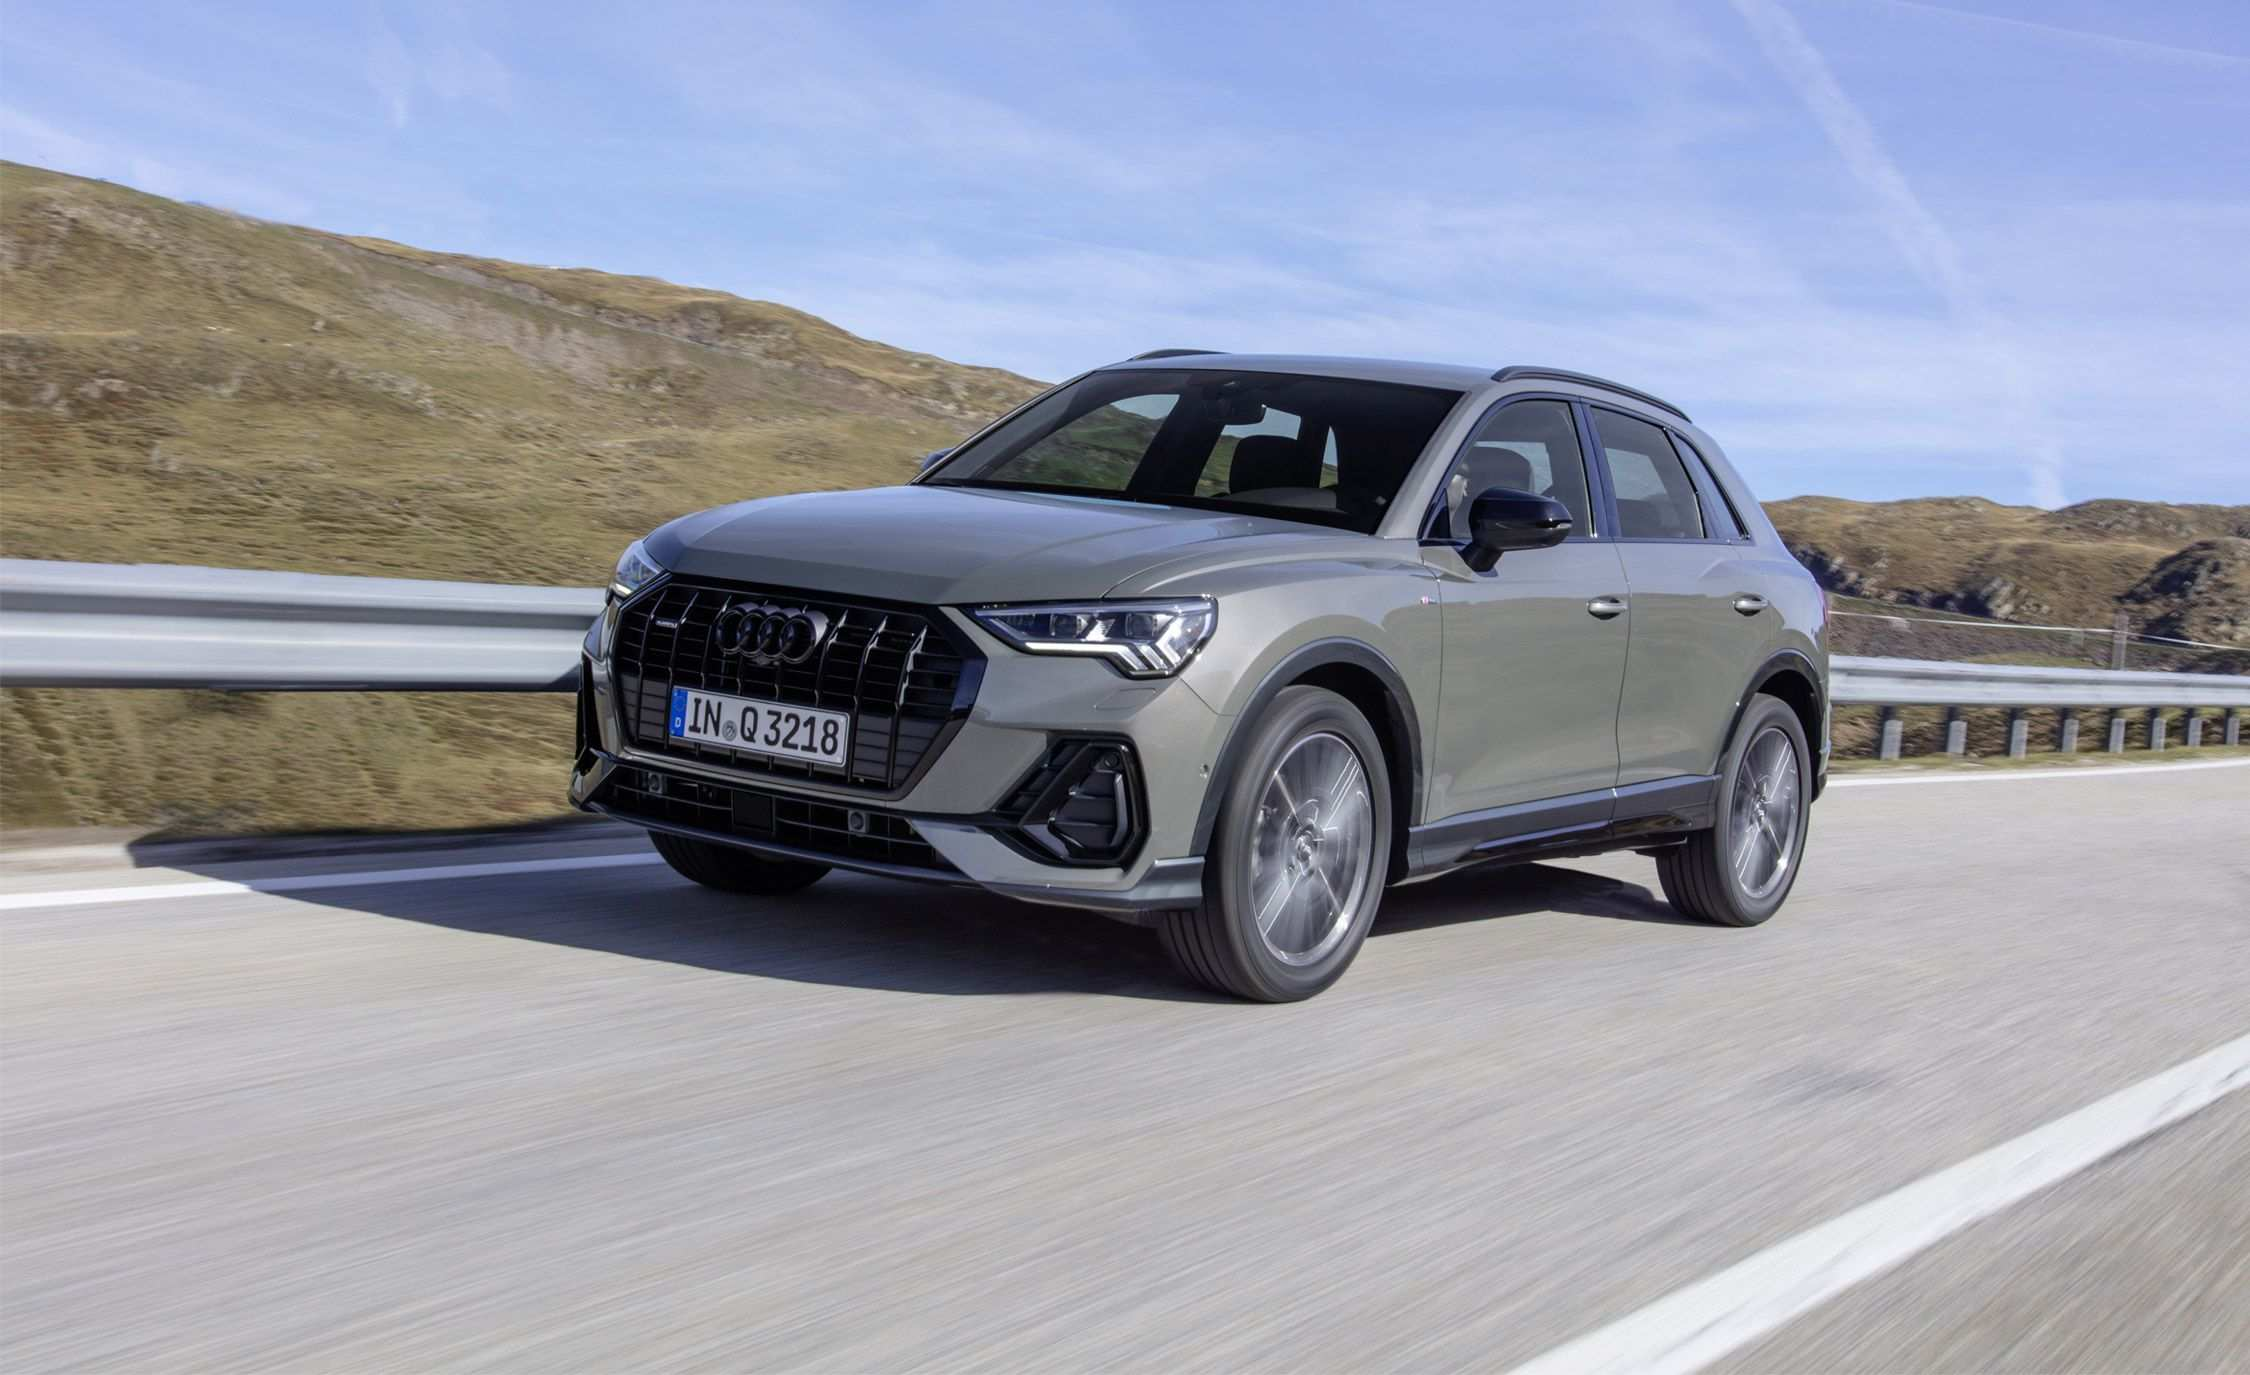 25 Concept of 2019 Audi Q3 Dimensions First Drive for 2019 Audi Q3 Dimensions